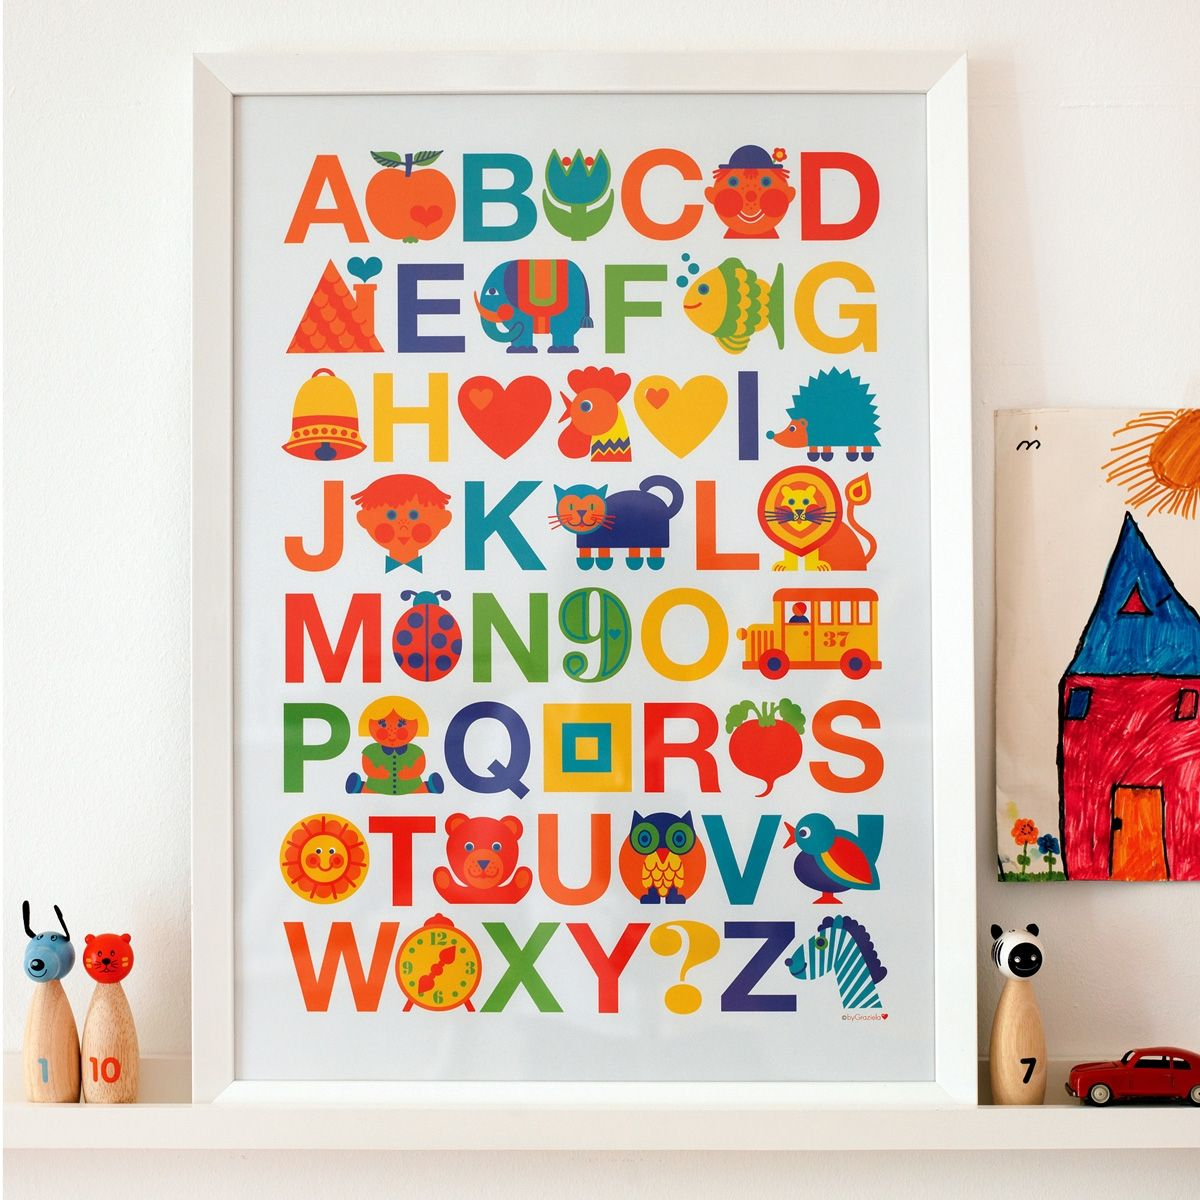 ABC Poster / Abc poster: Apple for A and Zebra for Z! Our Abc ...